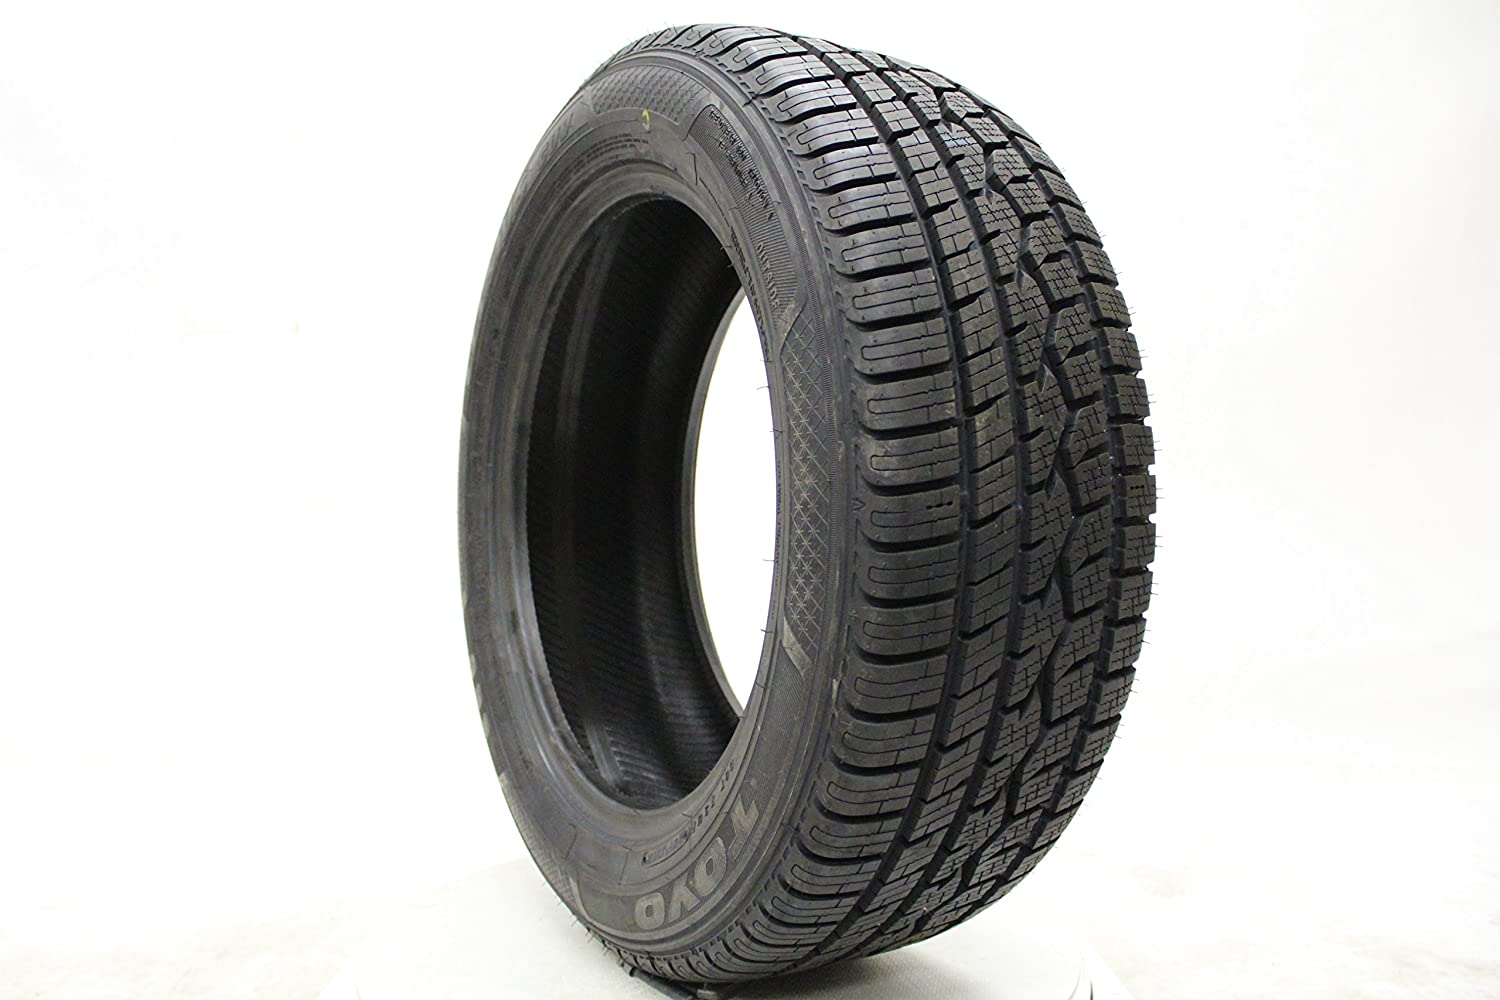 Toyo Celsius Cuv >> Amazon Com Toyo Celsius Cuv All Season Radial Tire 255